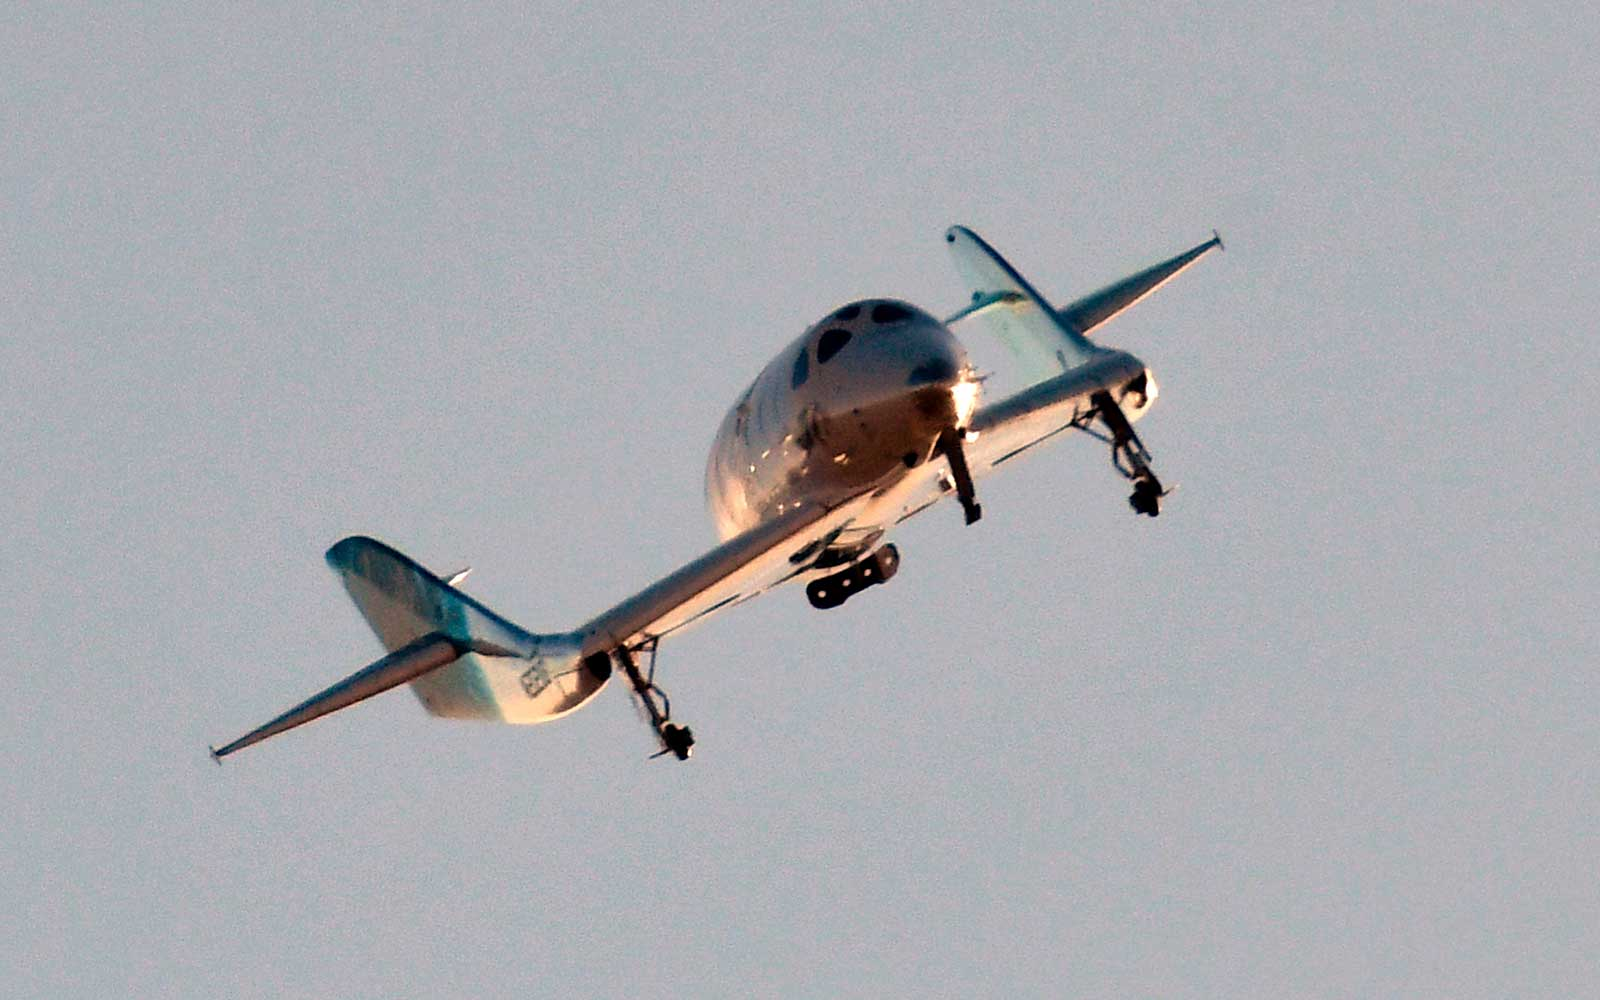 Virgin Galactic Just Took Its First Test Passenger Into Space